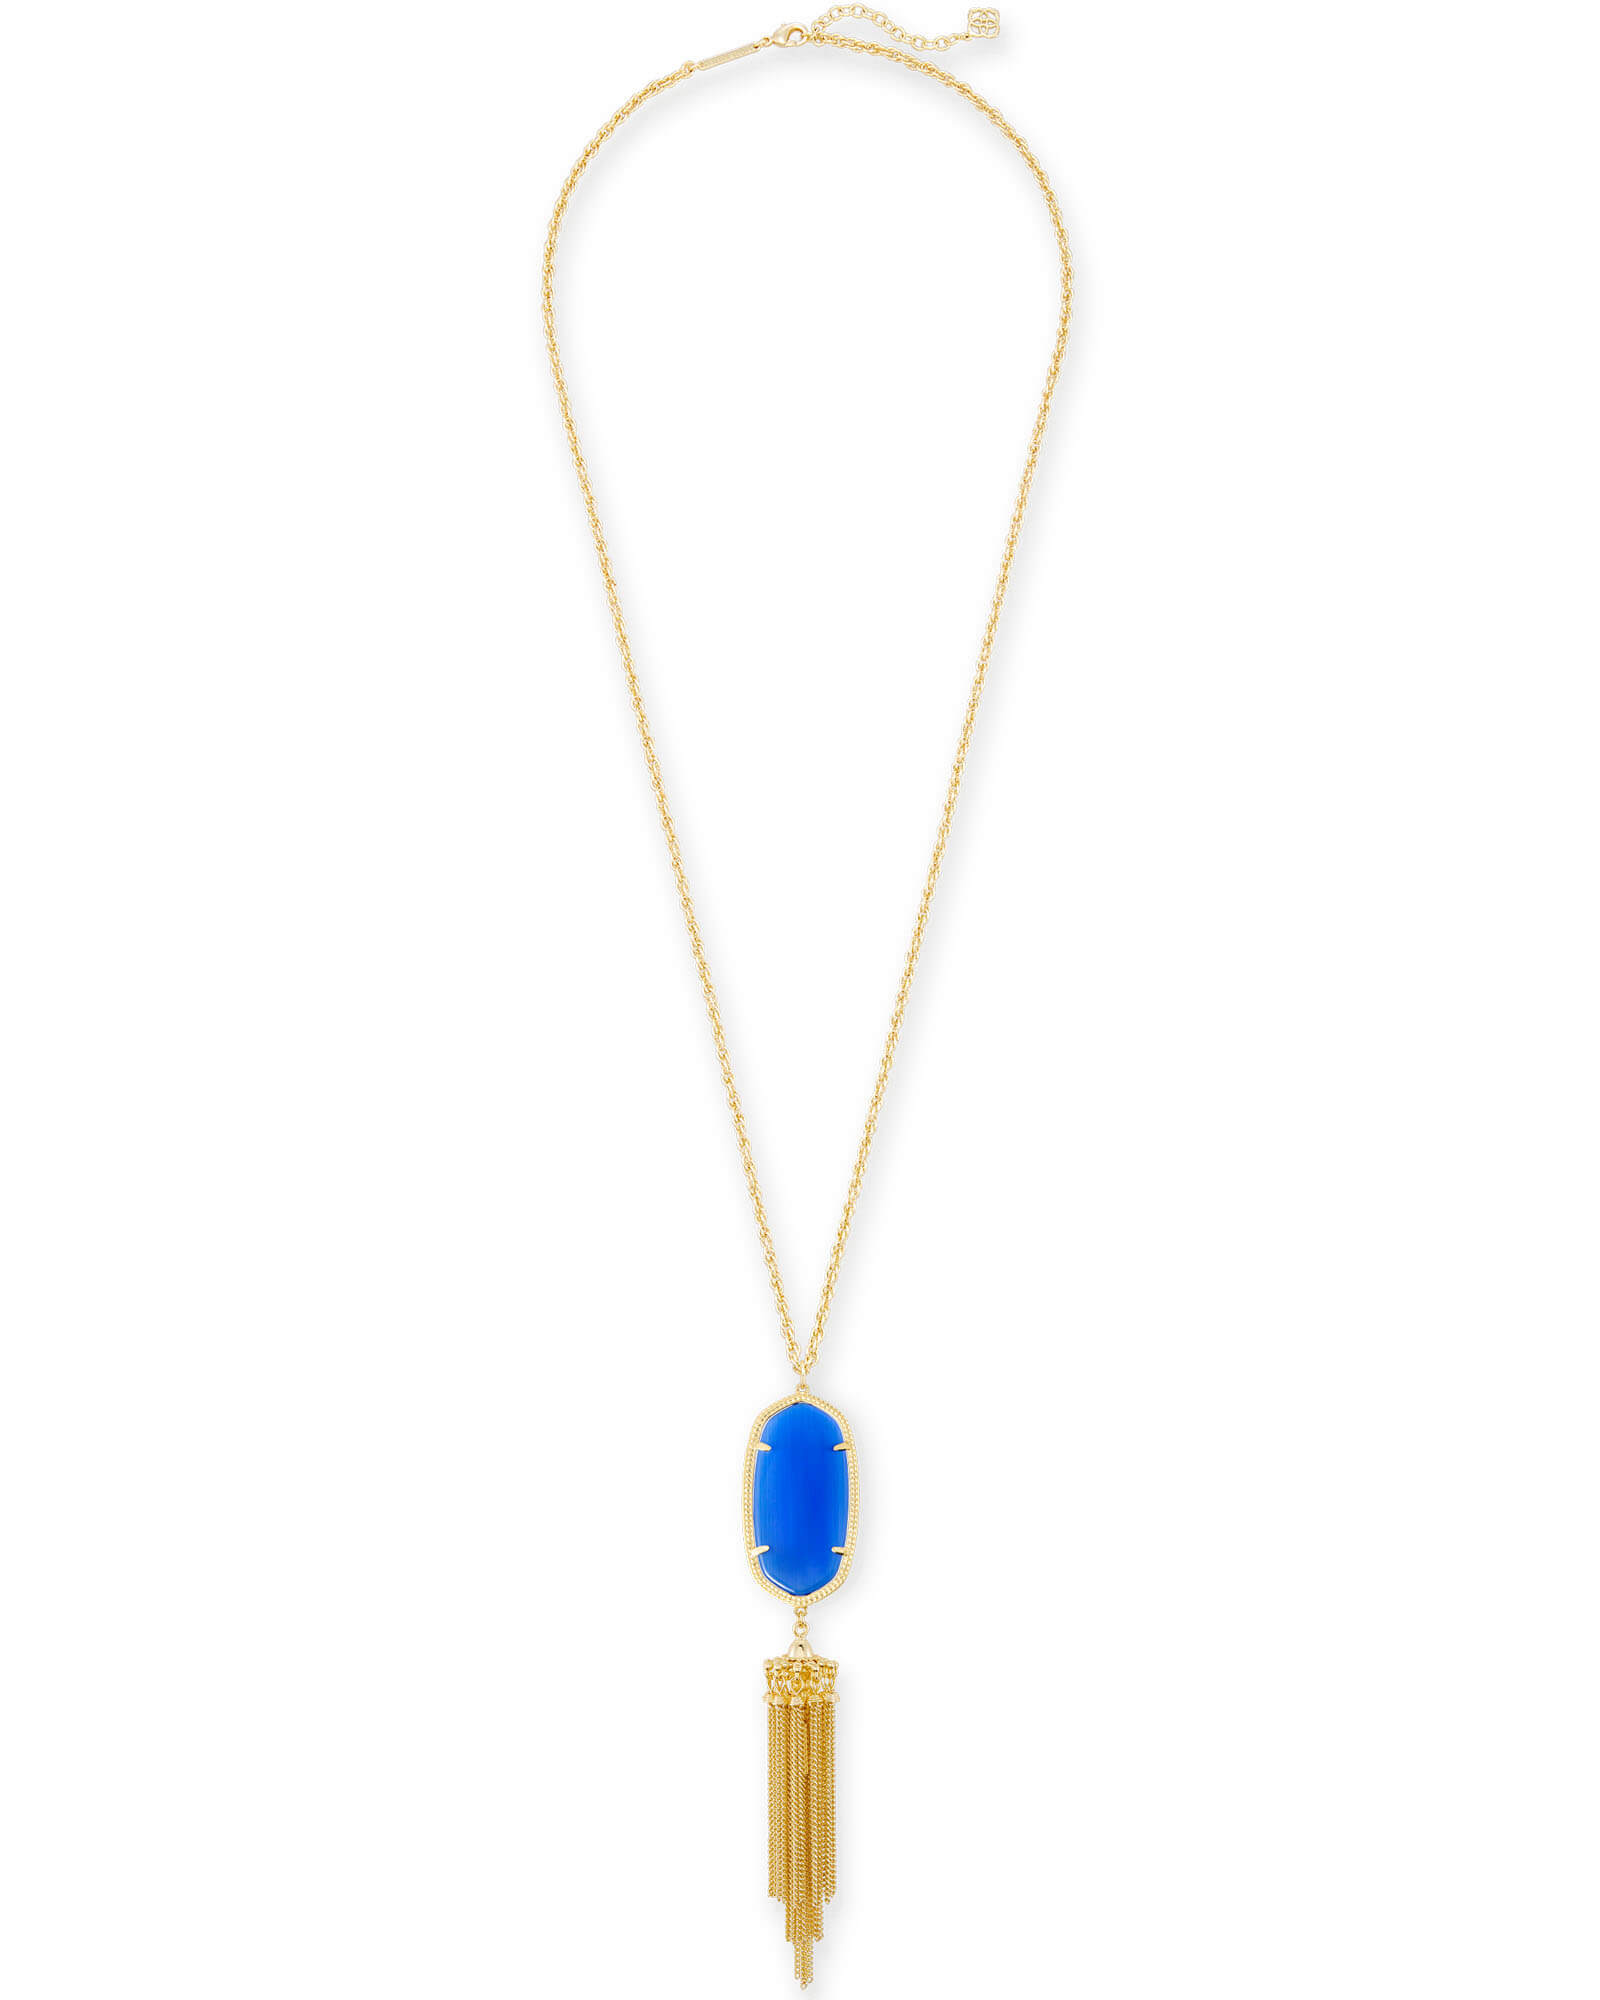 Rayne Necklace in Cobalt